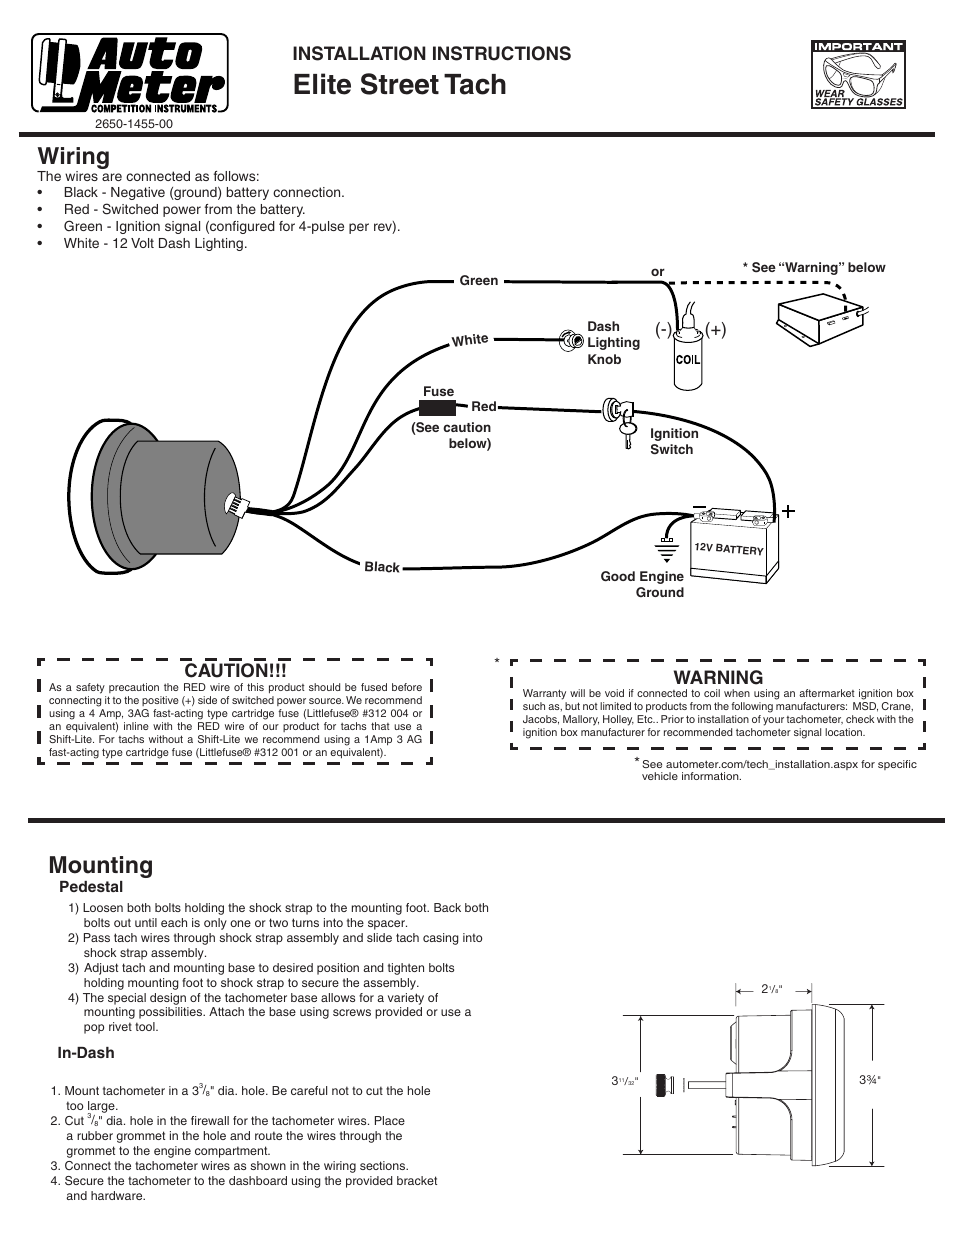 Tel Tach Wiring Diagram Magneto 31 Images For Msd Tachometer Diagrams Auto Meter 5690 Page1resize